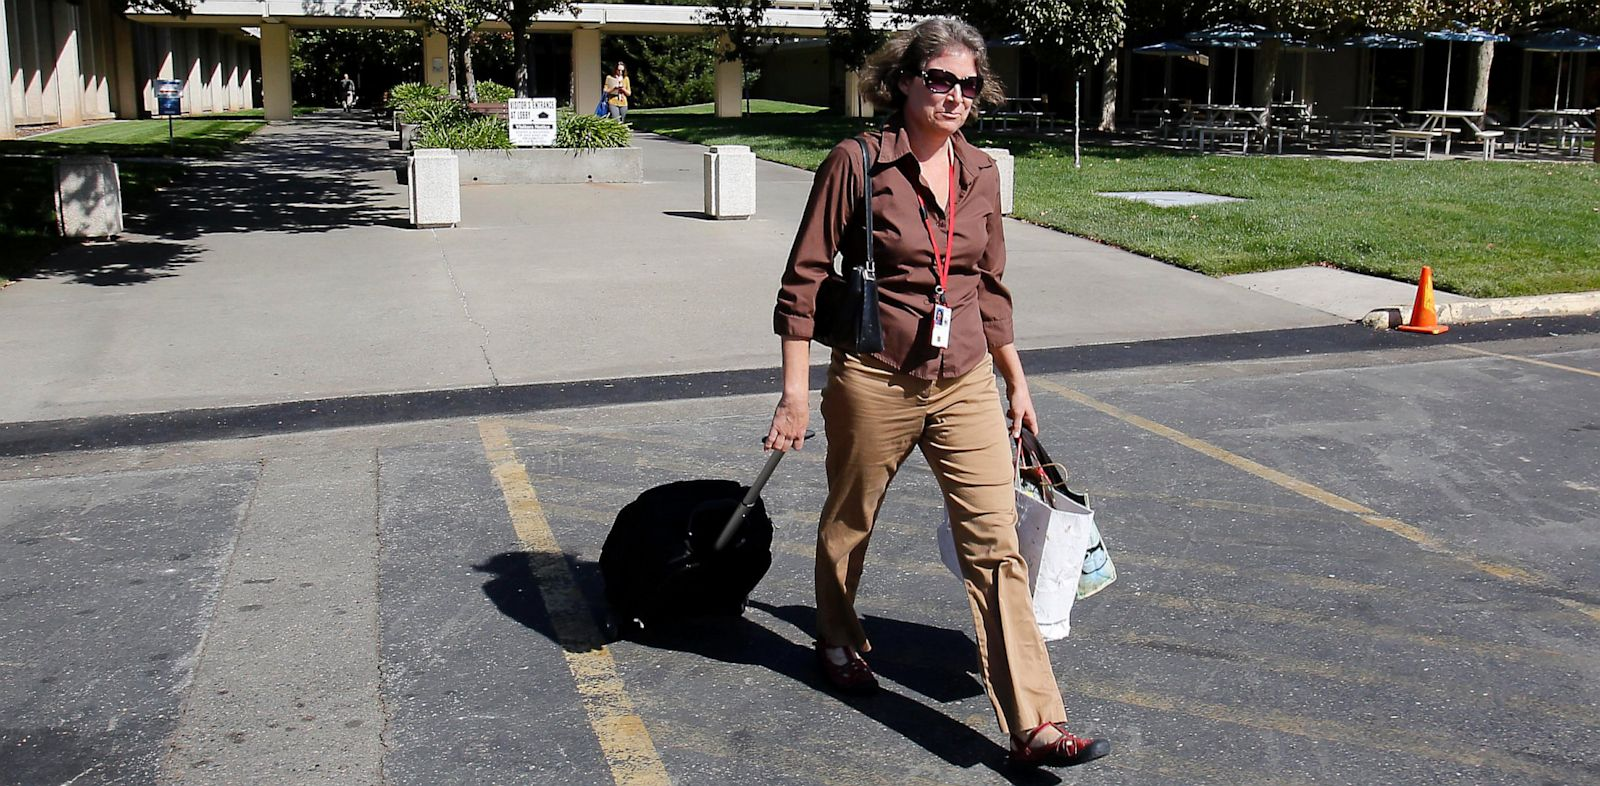 PHOTO: Furloughed federal employee